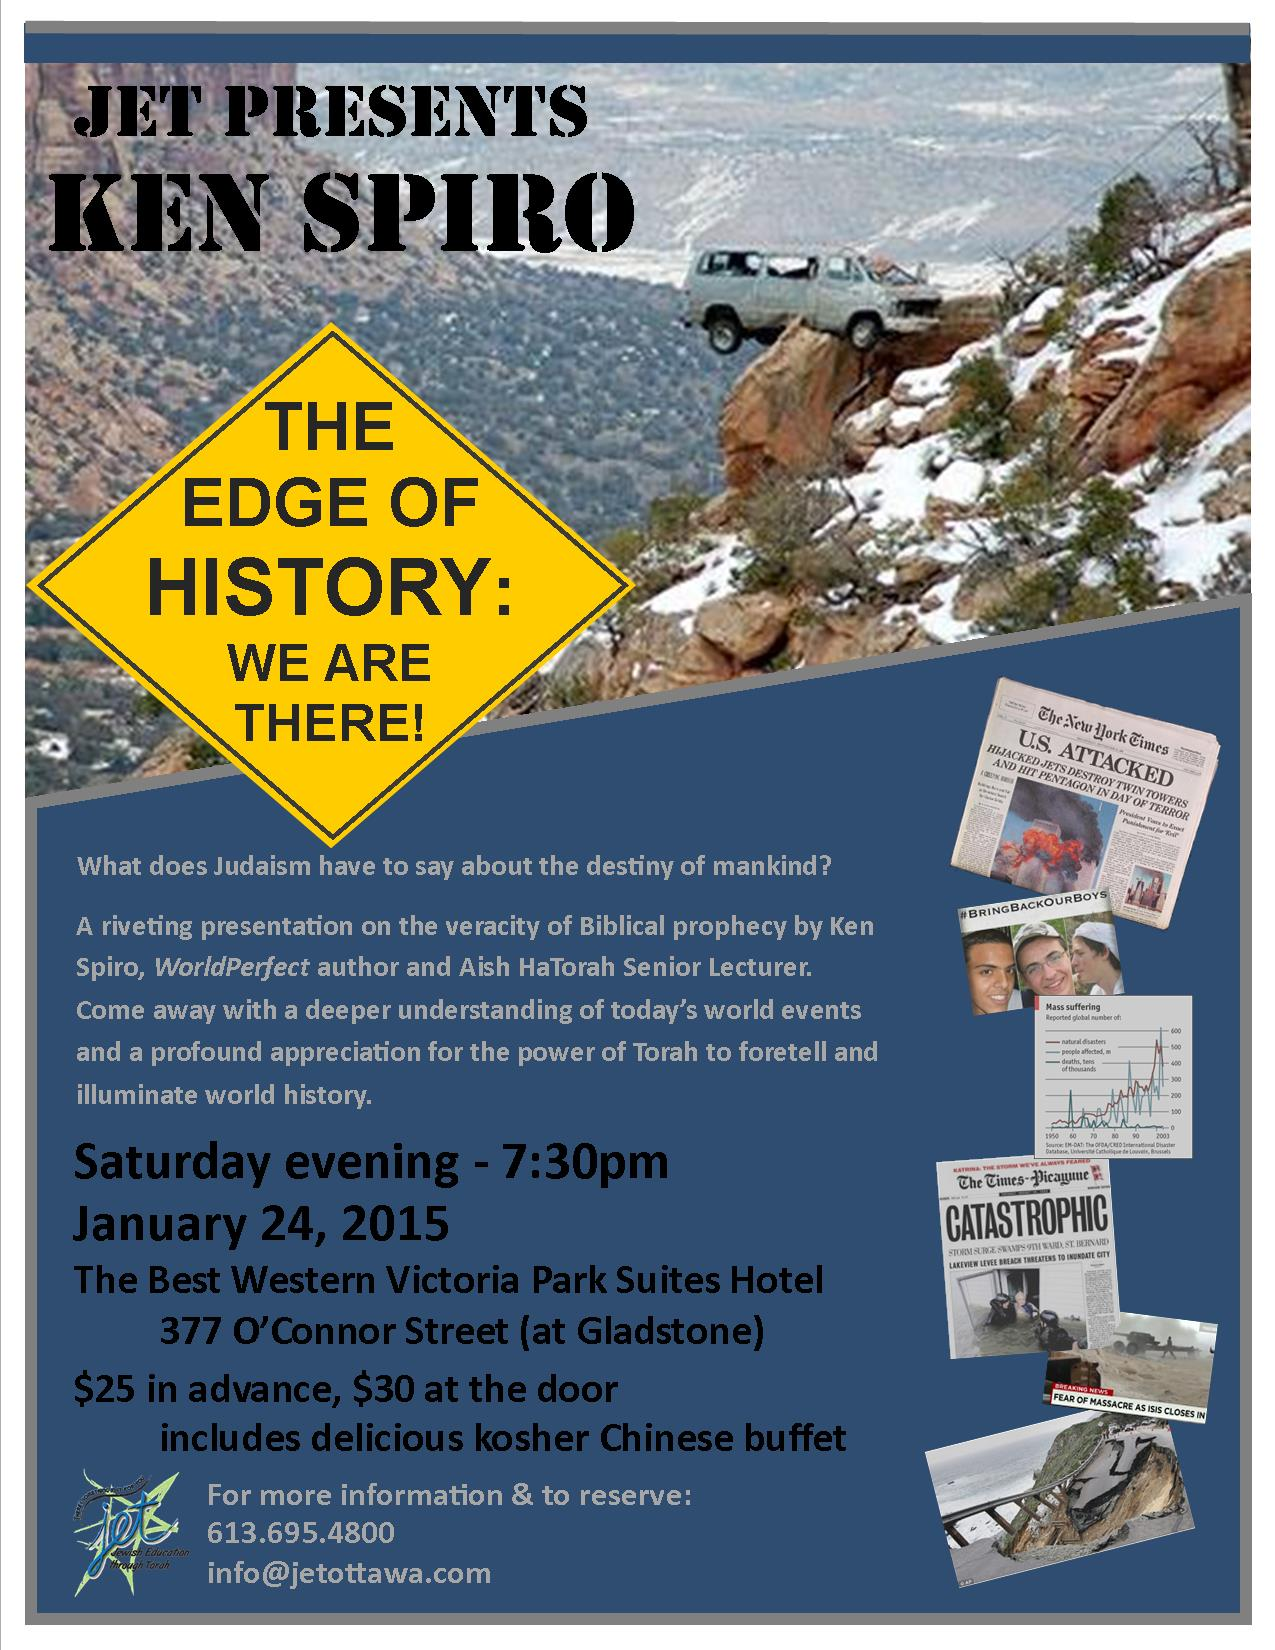 Jan 24 '15 Edge of History lecture & dinner v6